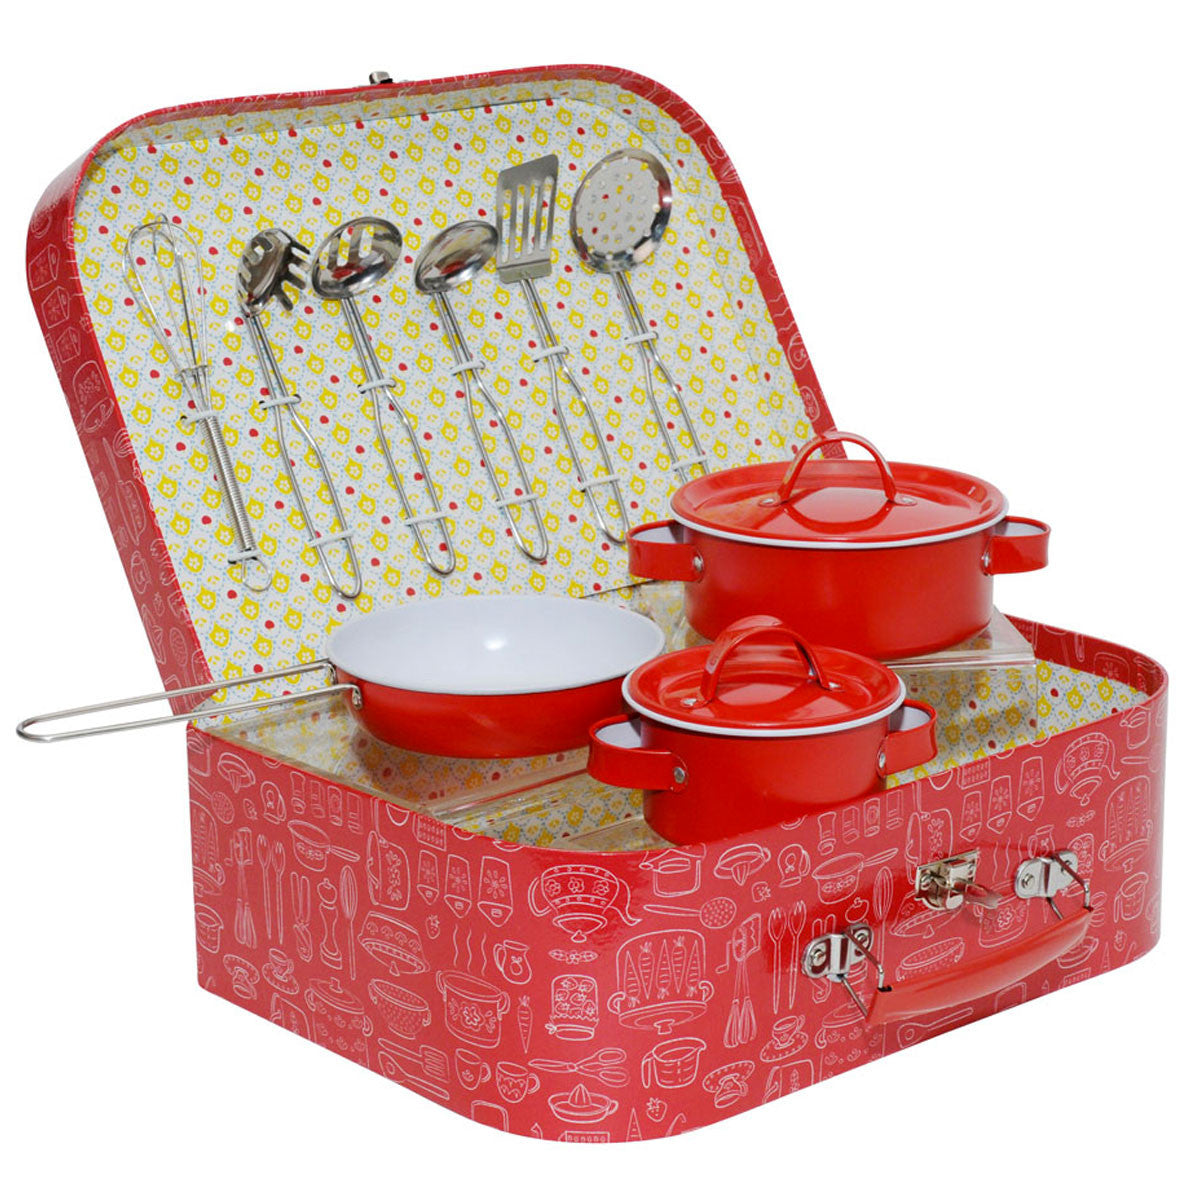 Tiger Tribe Vintage Kitchen Set Petit Collage Pretend Play Red at Little Earth Nest Eco Shop